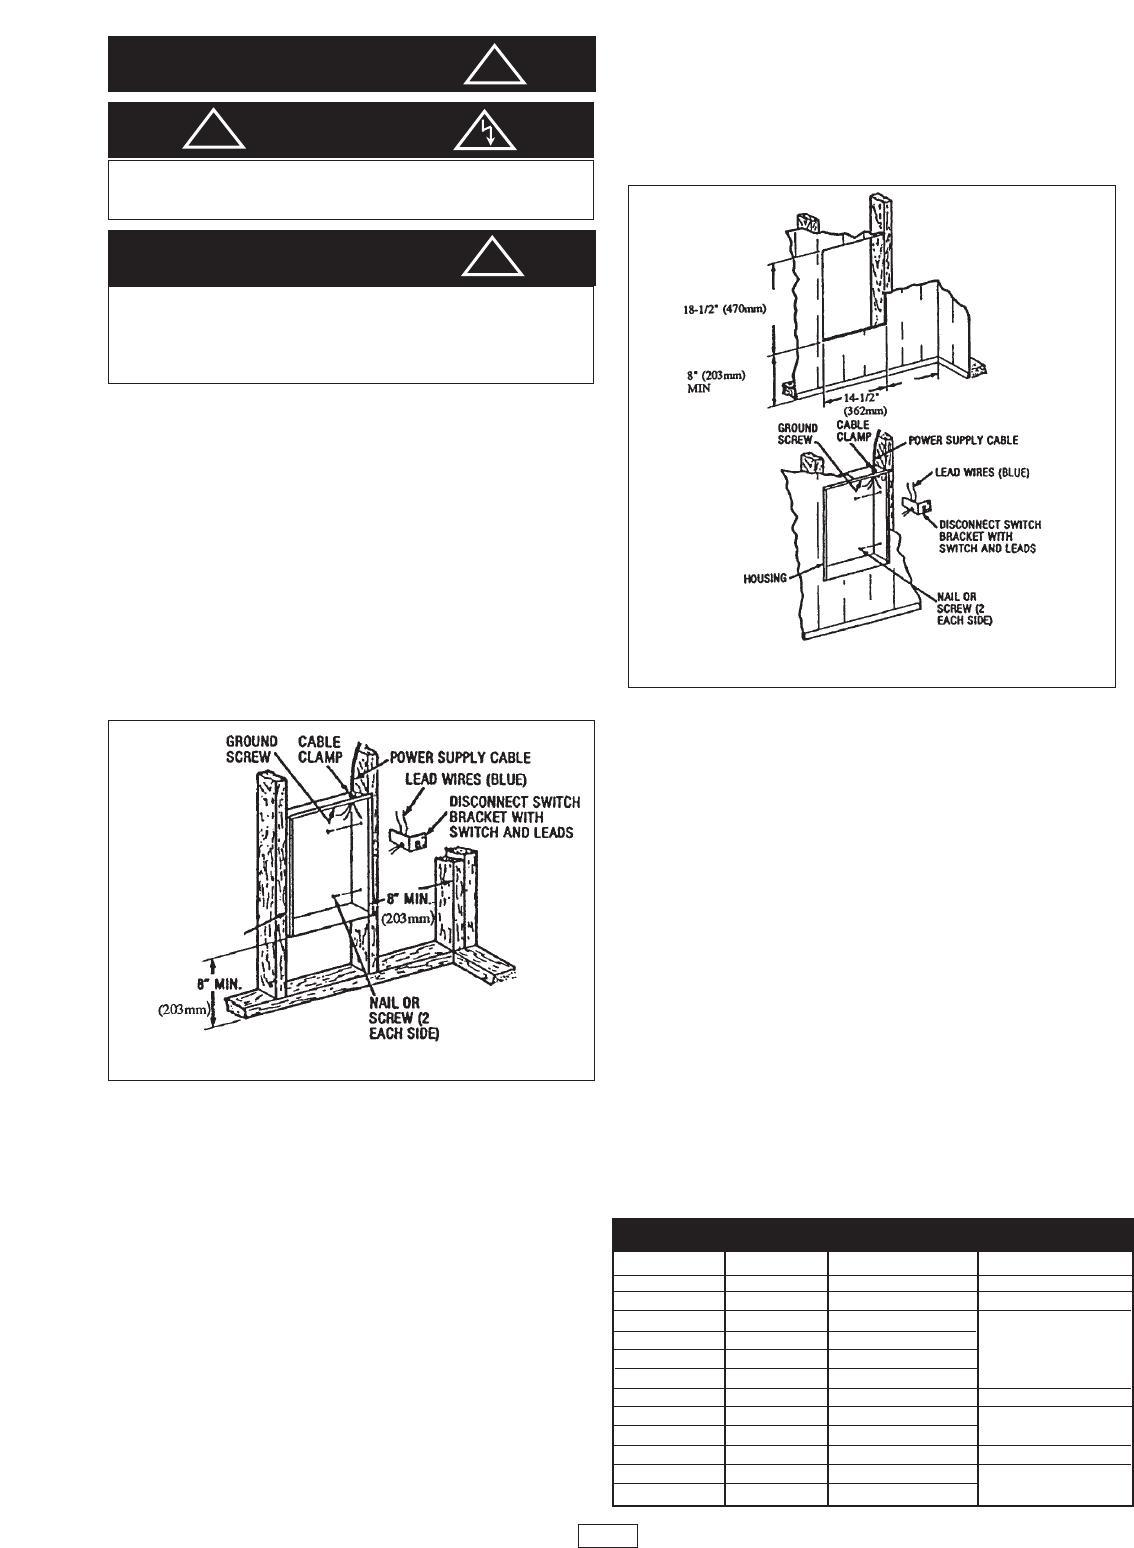 hight resolution of marley engineered products fra installation and maintenance instructions page 2